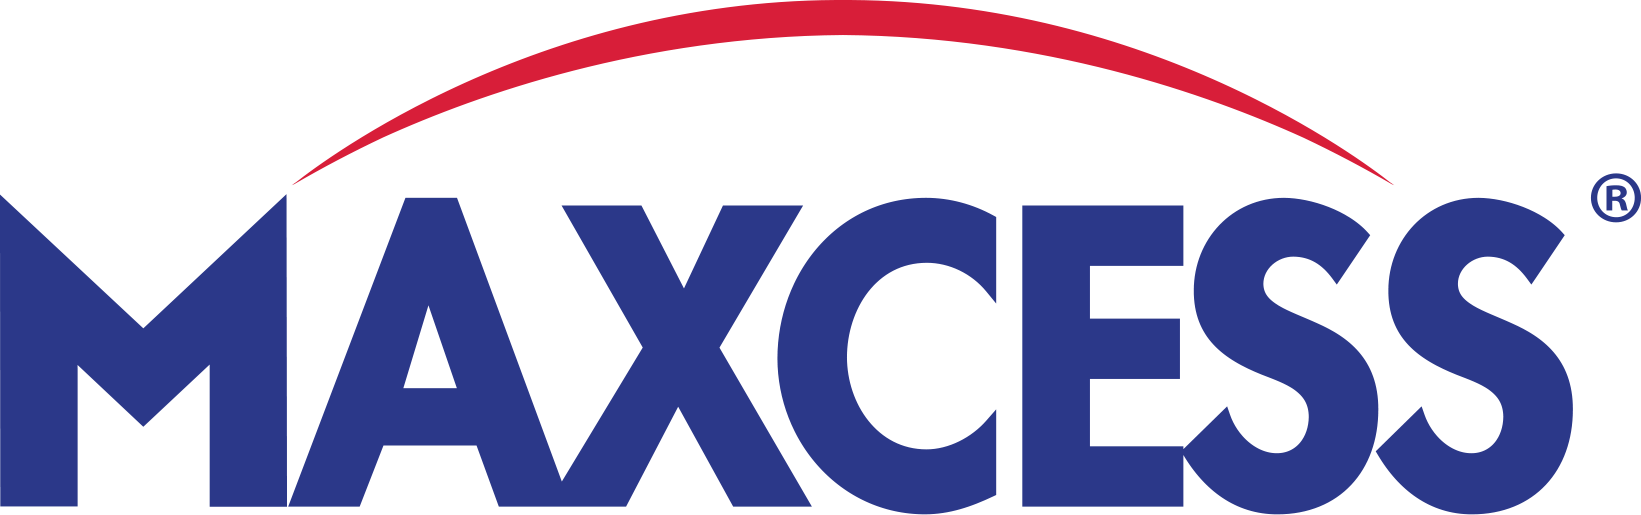 Maxcess International Logo